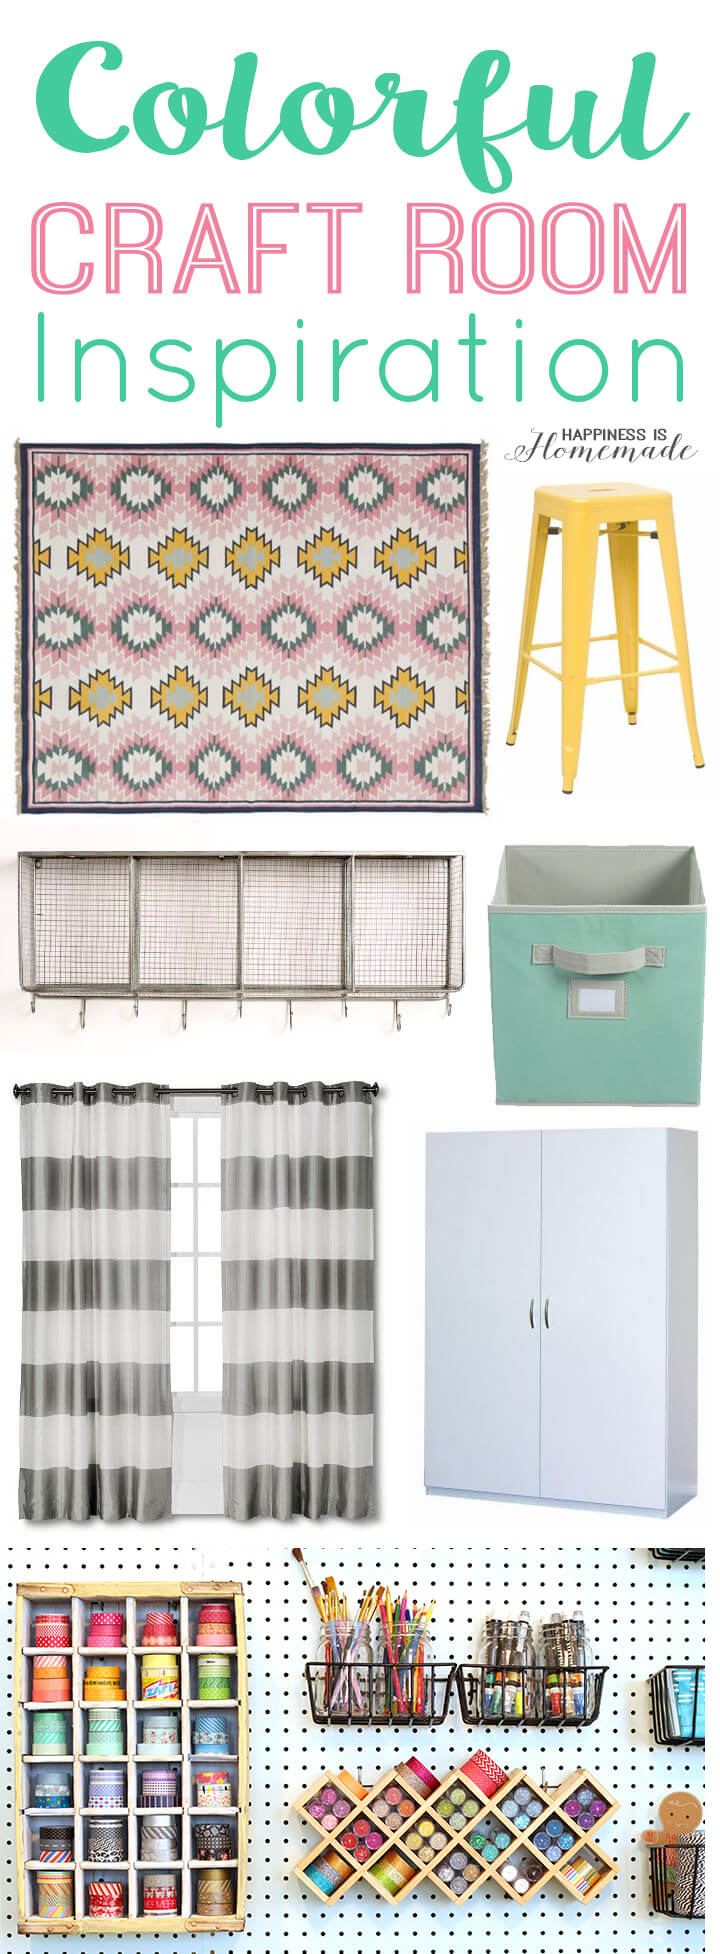 Colorful Craft Room Inspiration